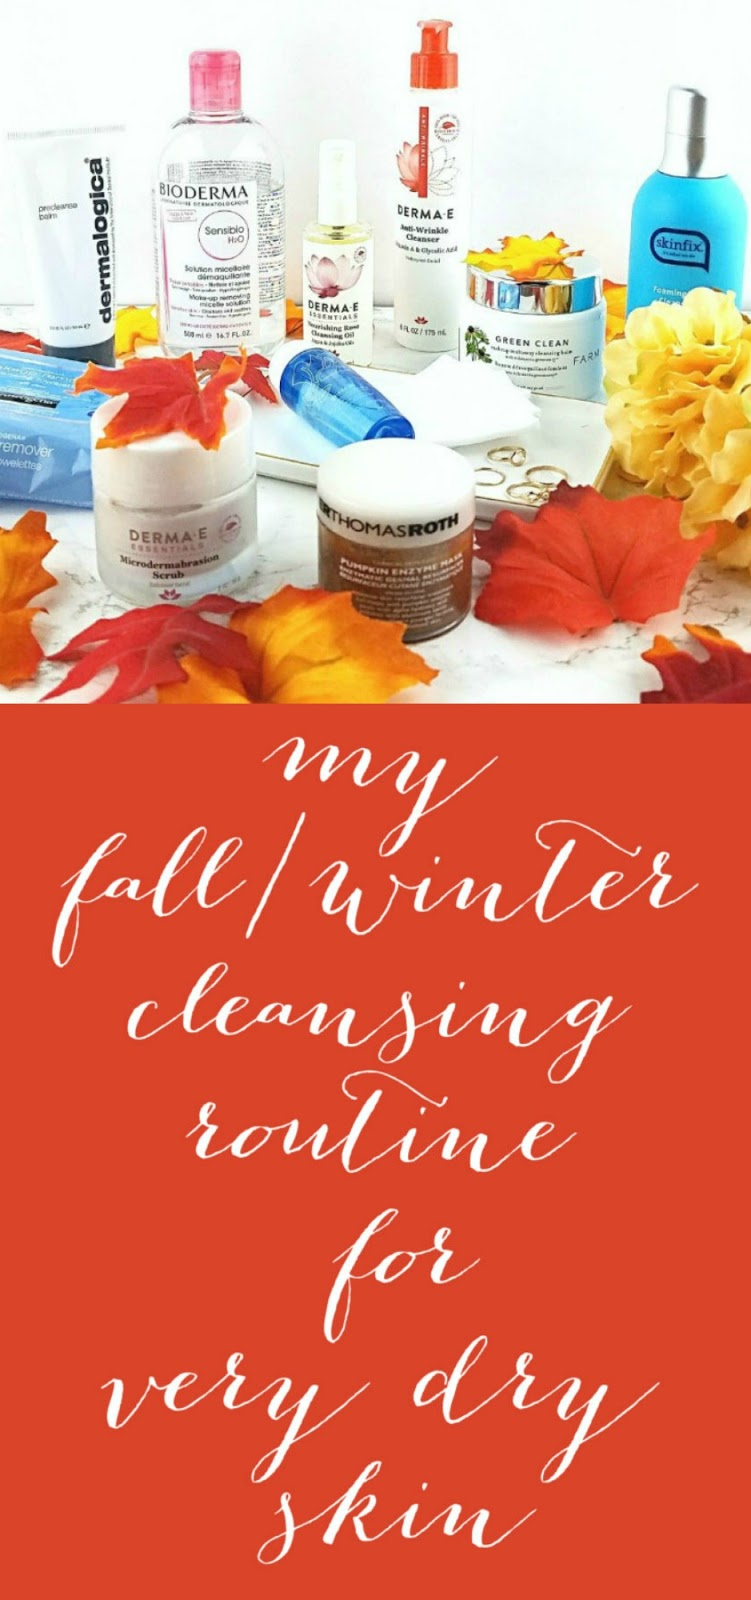 My Fall/Winter Cleansing Routine for Very Dry Skin